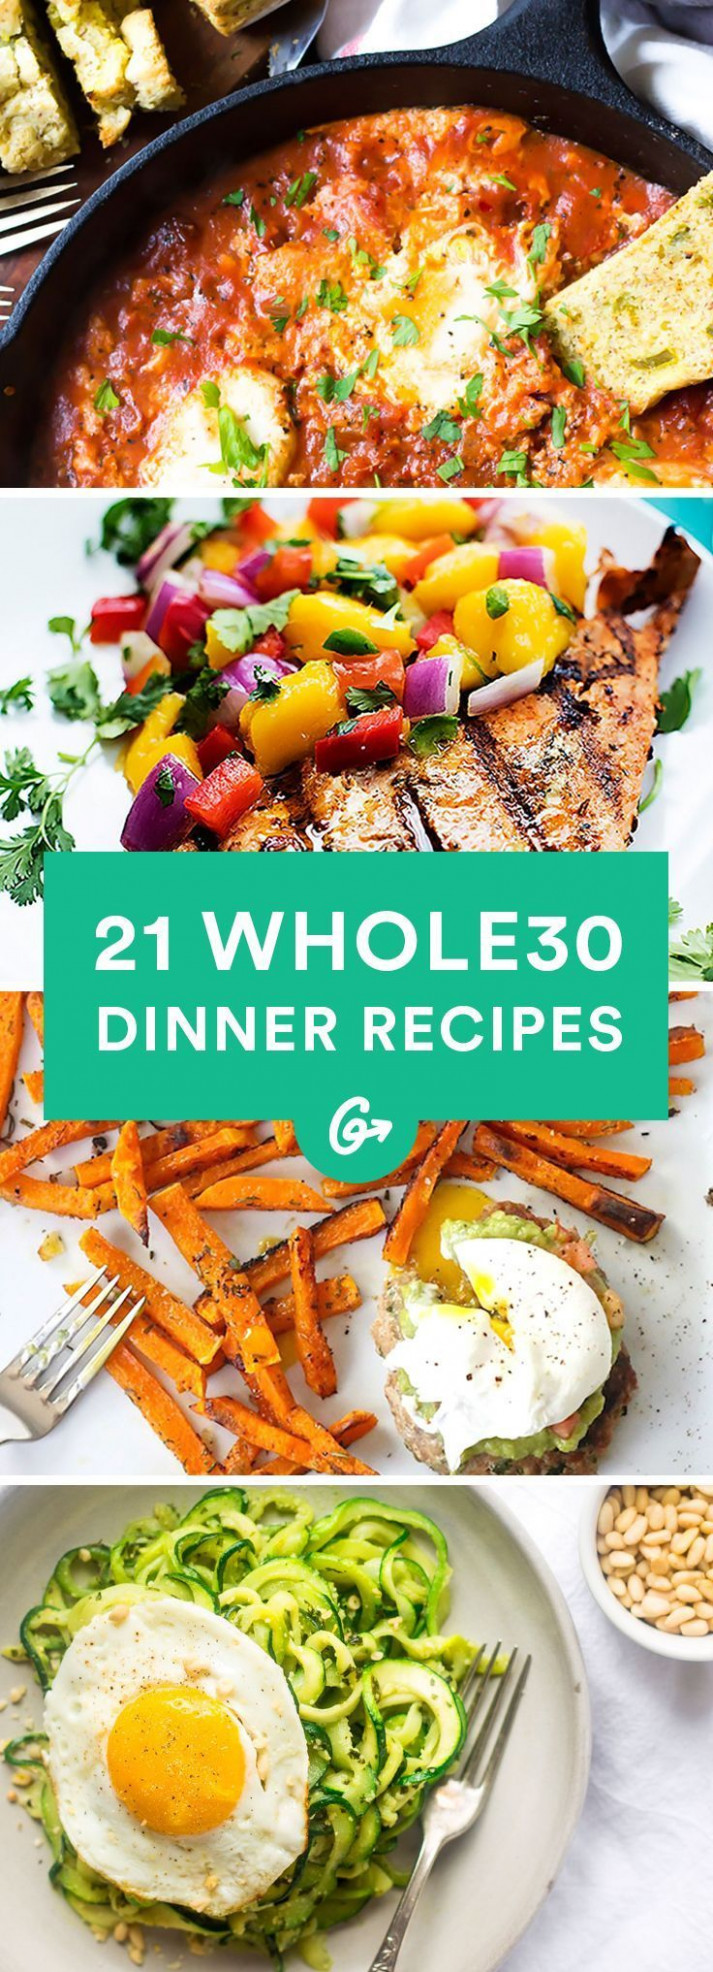 21 Easy and Delicious Whole30 Dinner Recipes | Whole 30 ...